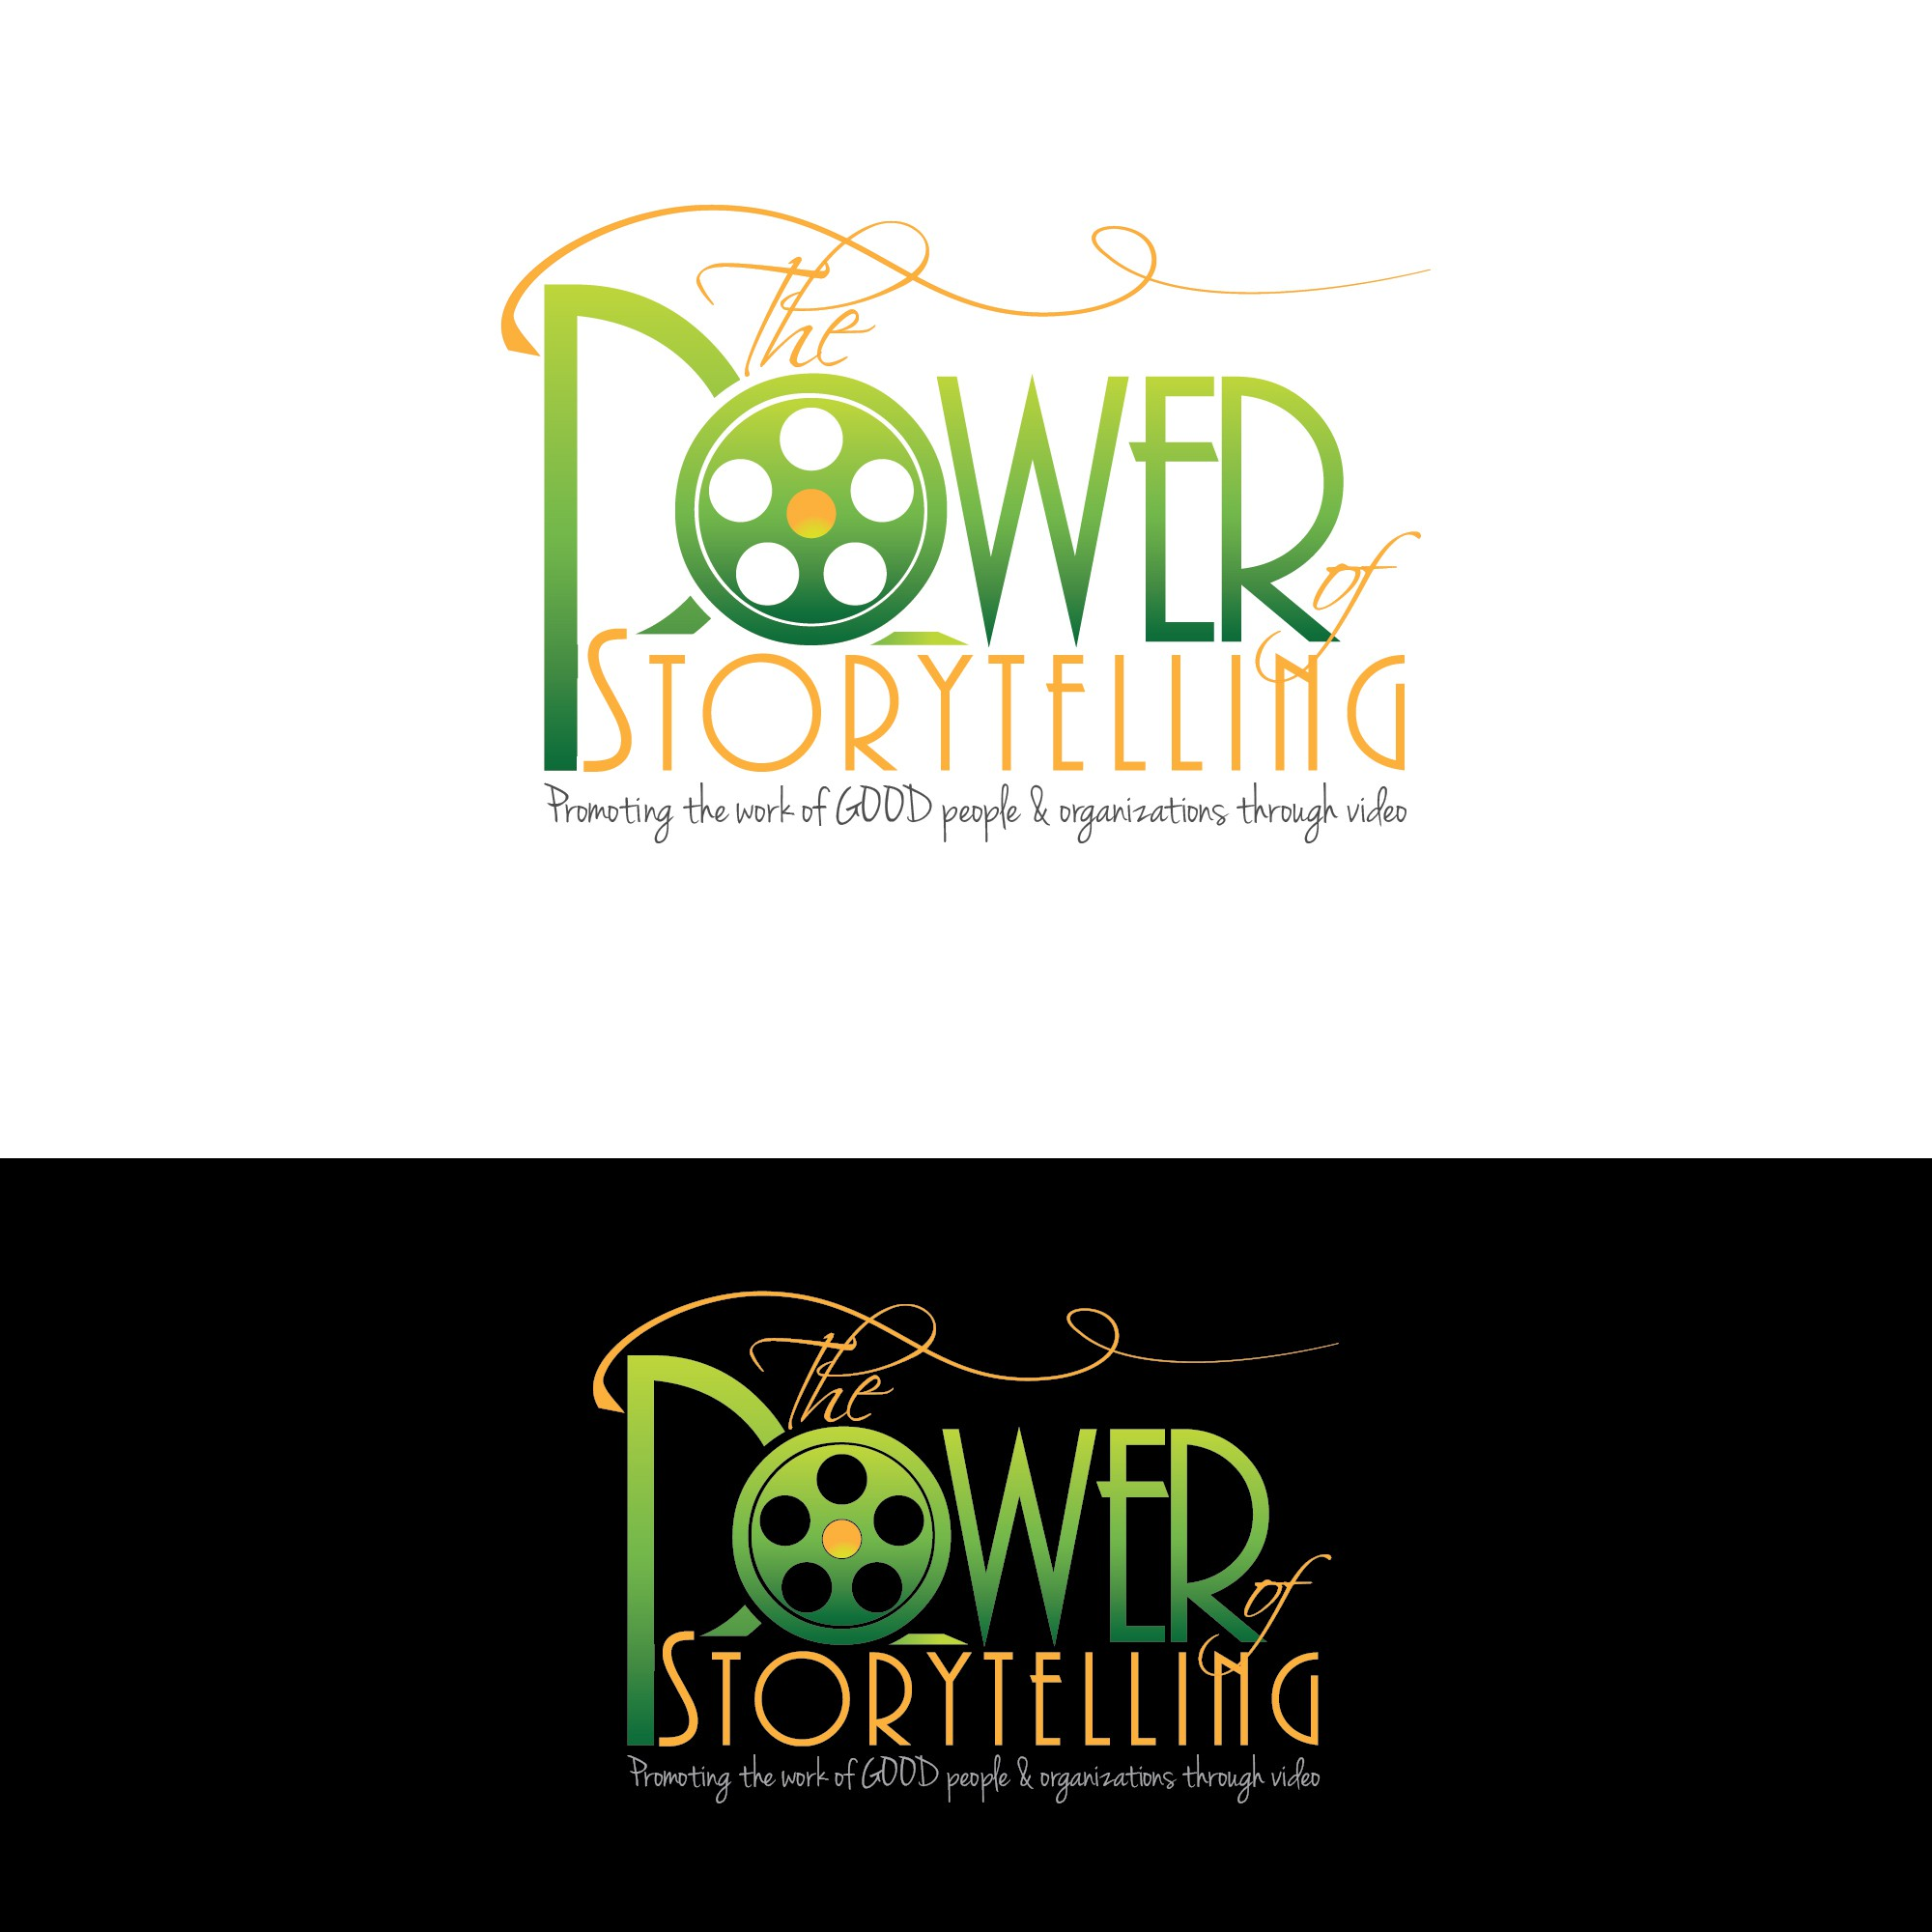 New logo wanted for The Power of Storytelling